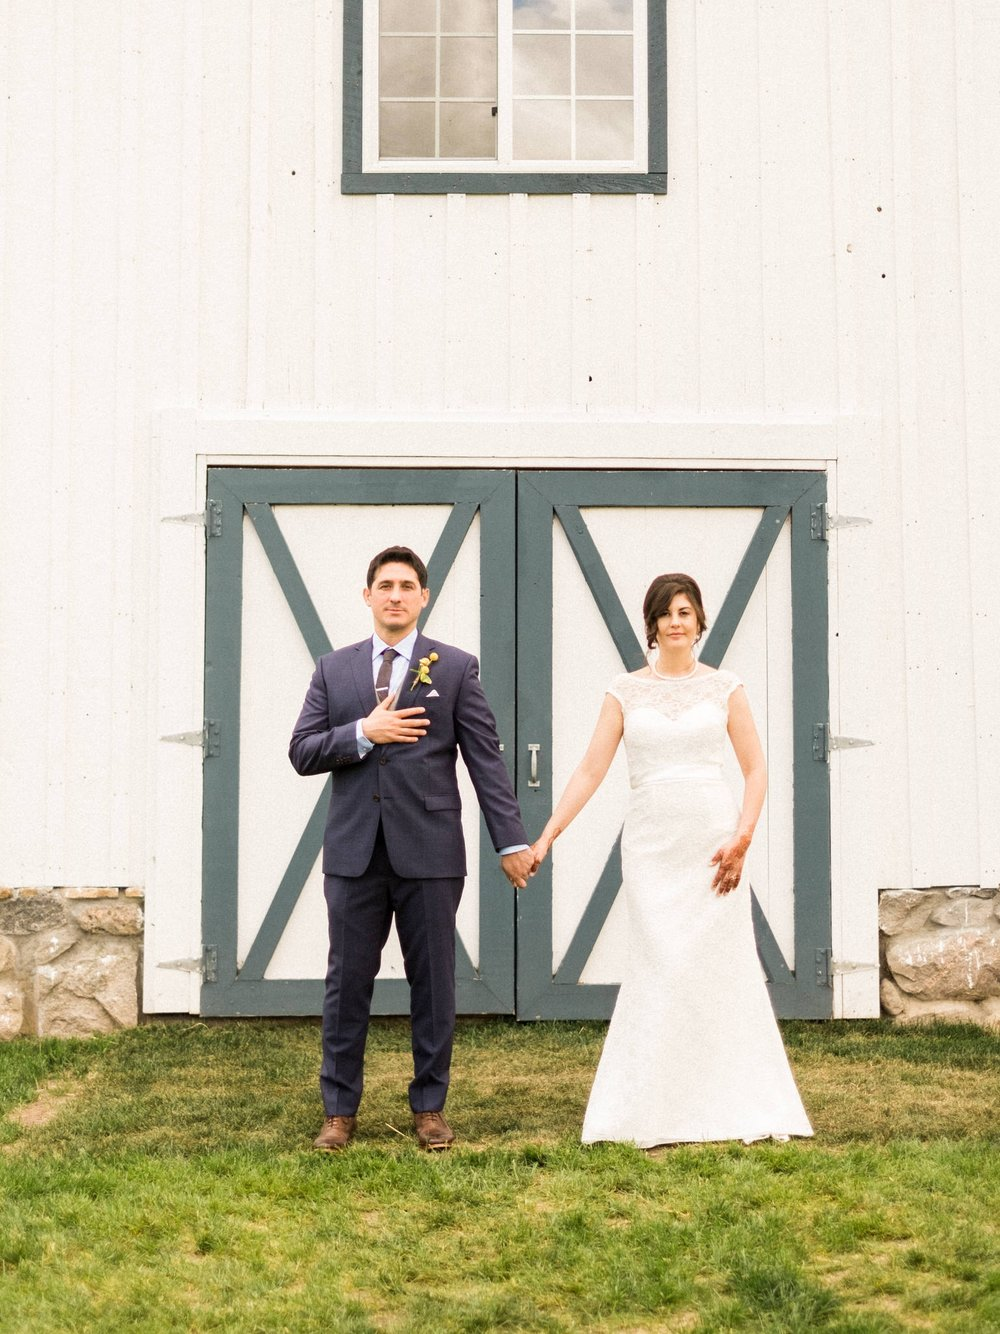 Minnesota Barn wedding at Bloom Lake Barn in Shafer, MN